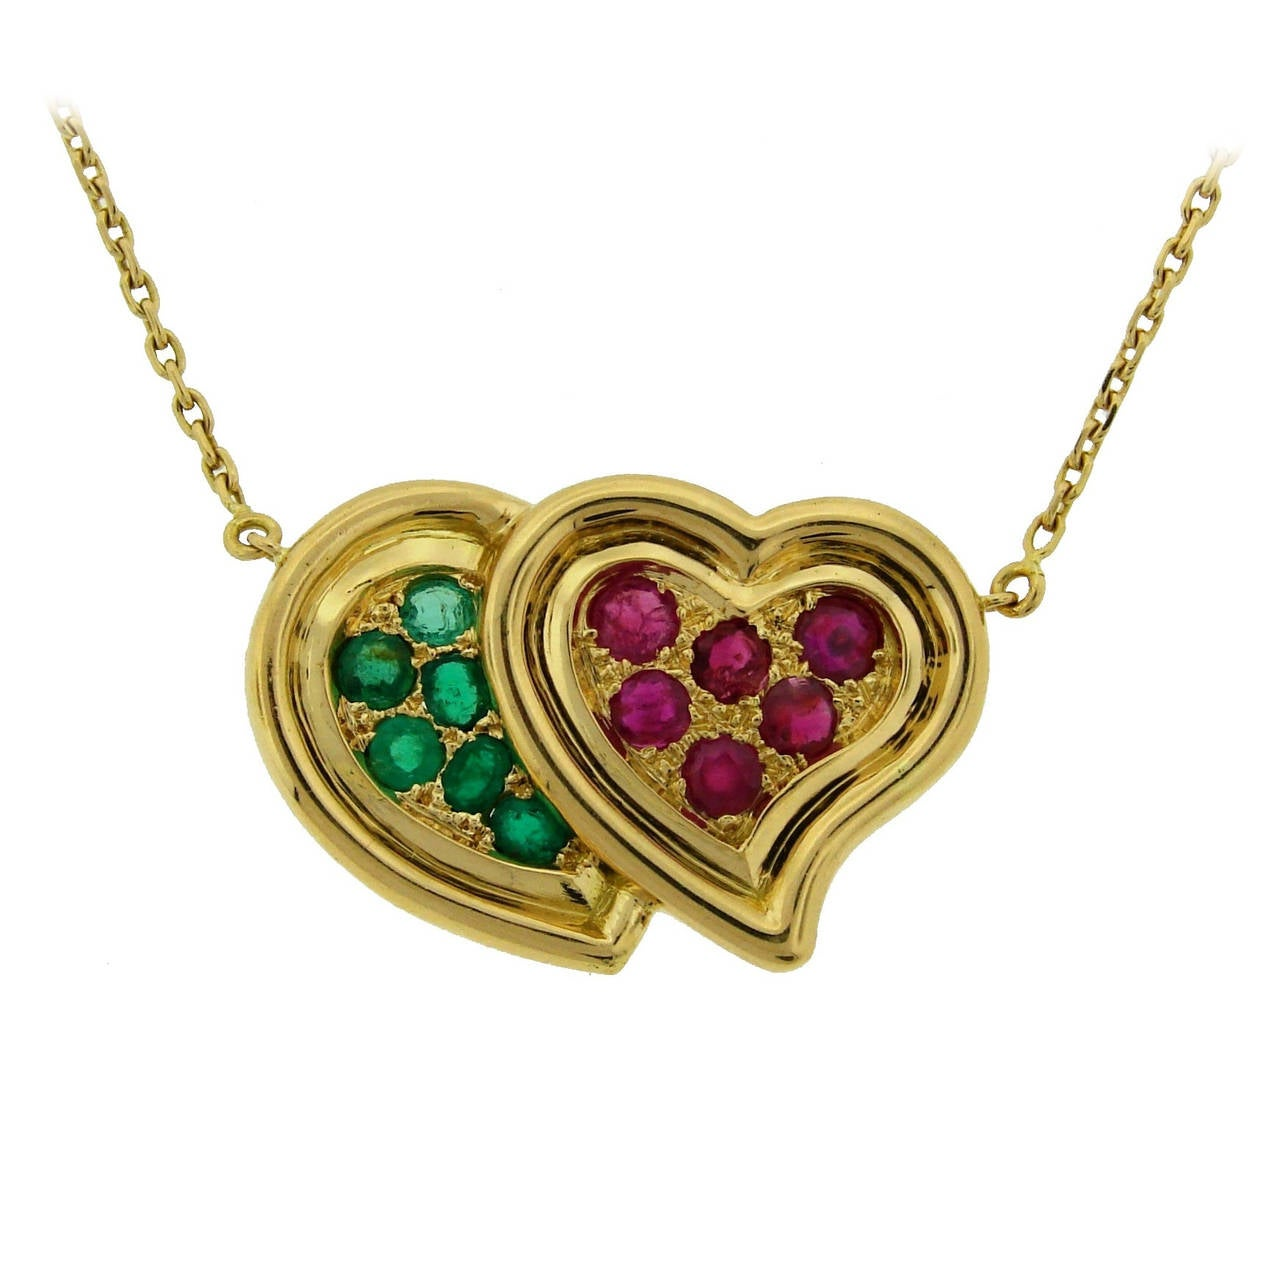 1950s rene boivin ruby emerald yellow gold heart pendant necklace 1950s rene boivin ruby emerald yellow gold heart pendant necklace for sale aloadofball